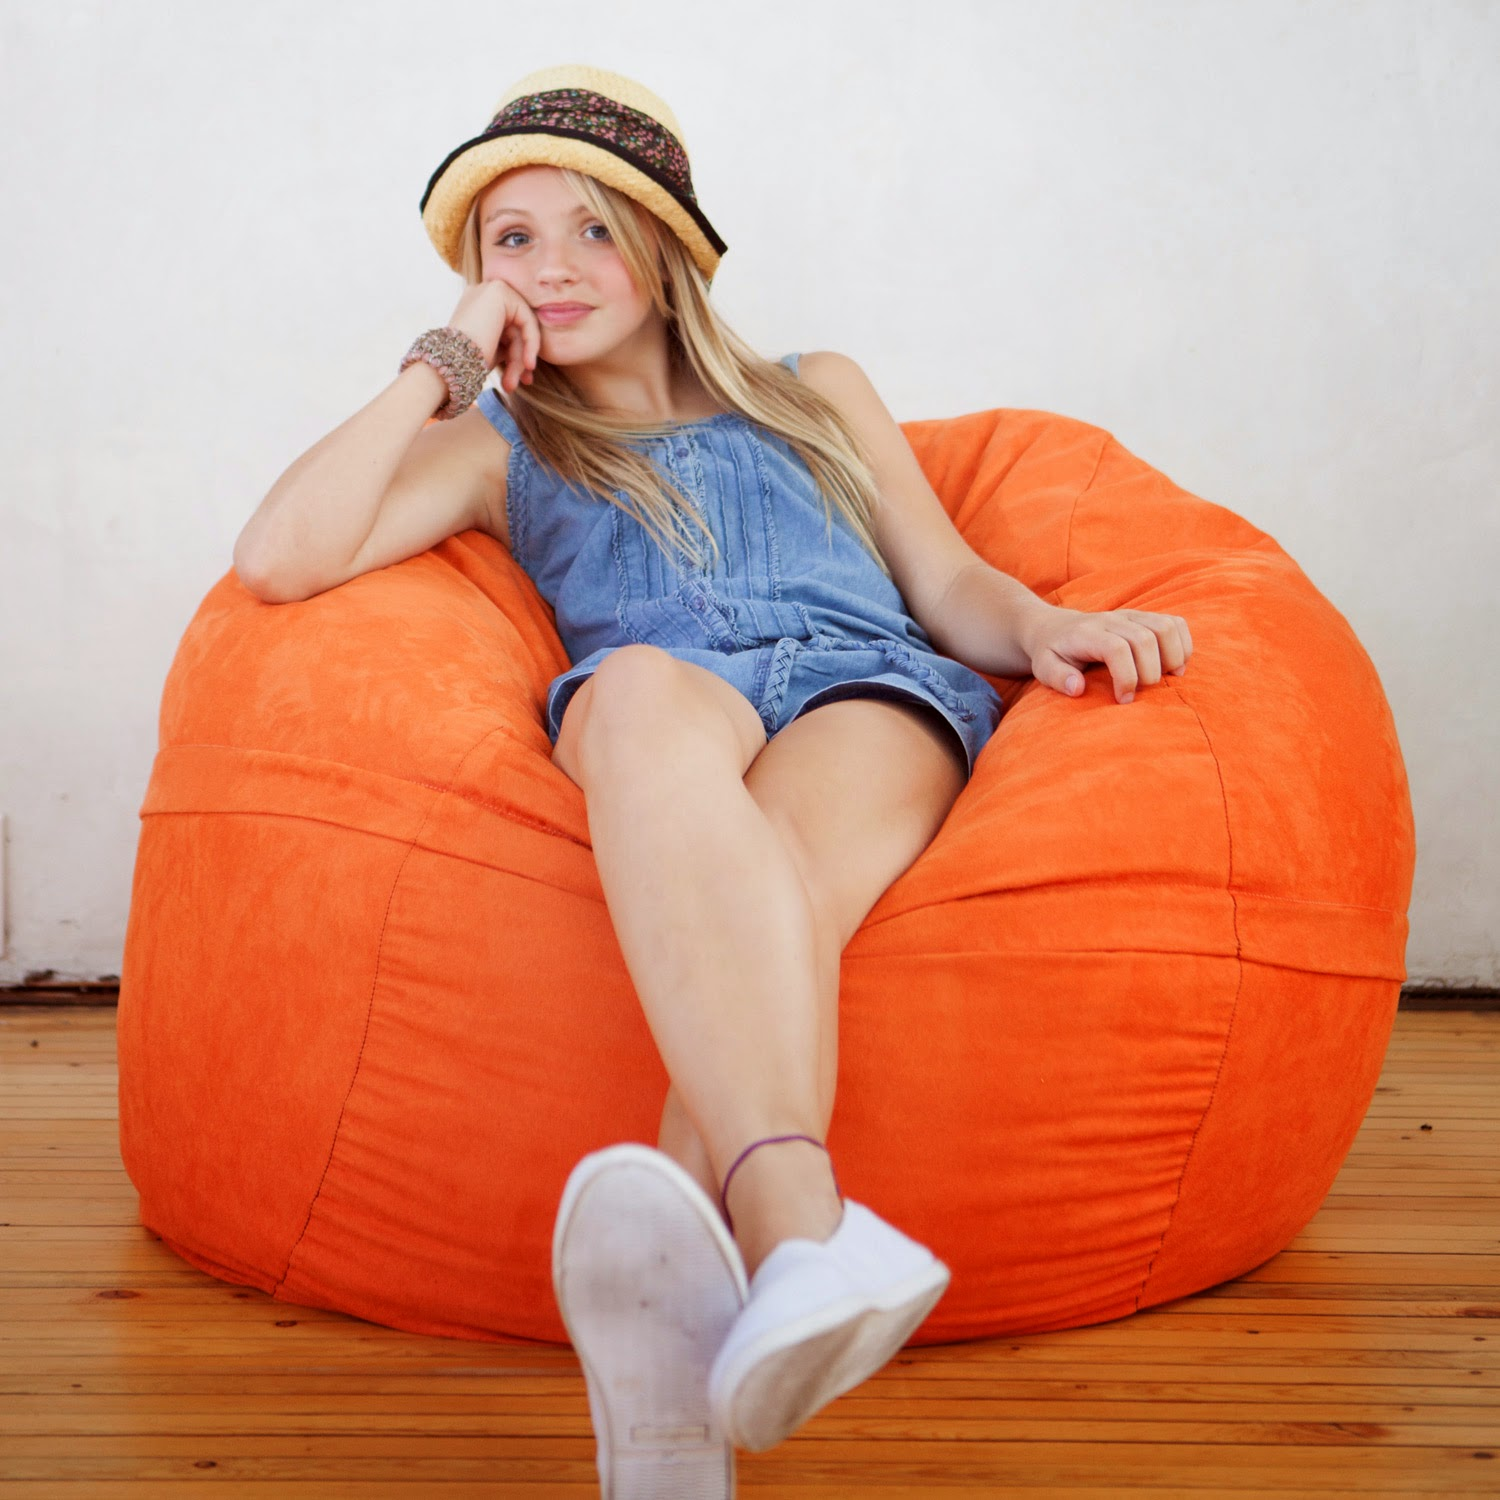 321412557636 likewise Photo likewise 8 Foot Giant Foam Filled Bean Bag like Lovesac moreover Cheap Large Bean Bag Chairs in addition Gaming Chairs. on huge bean bag chair covers